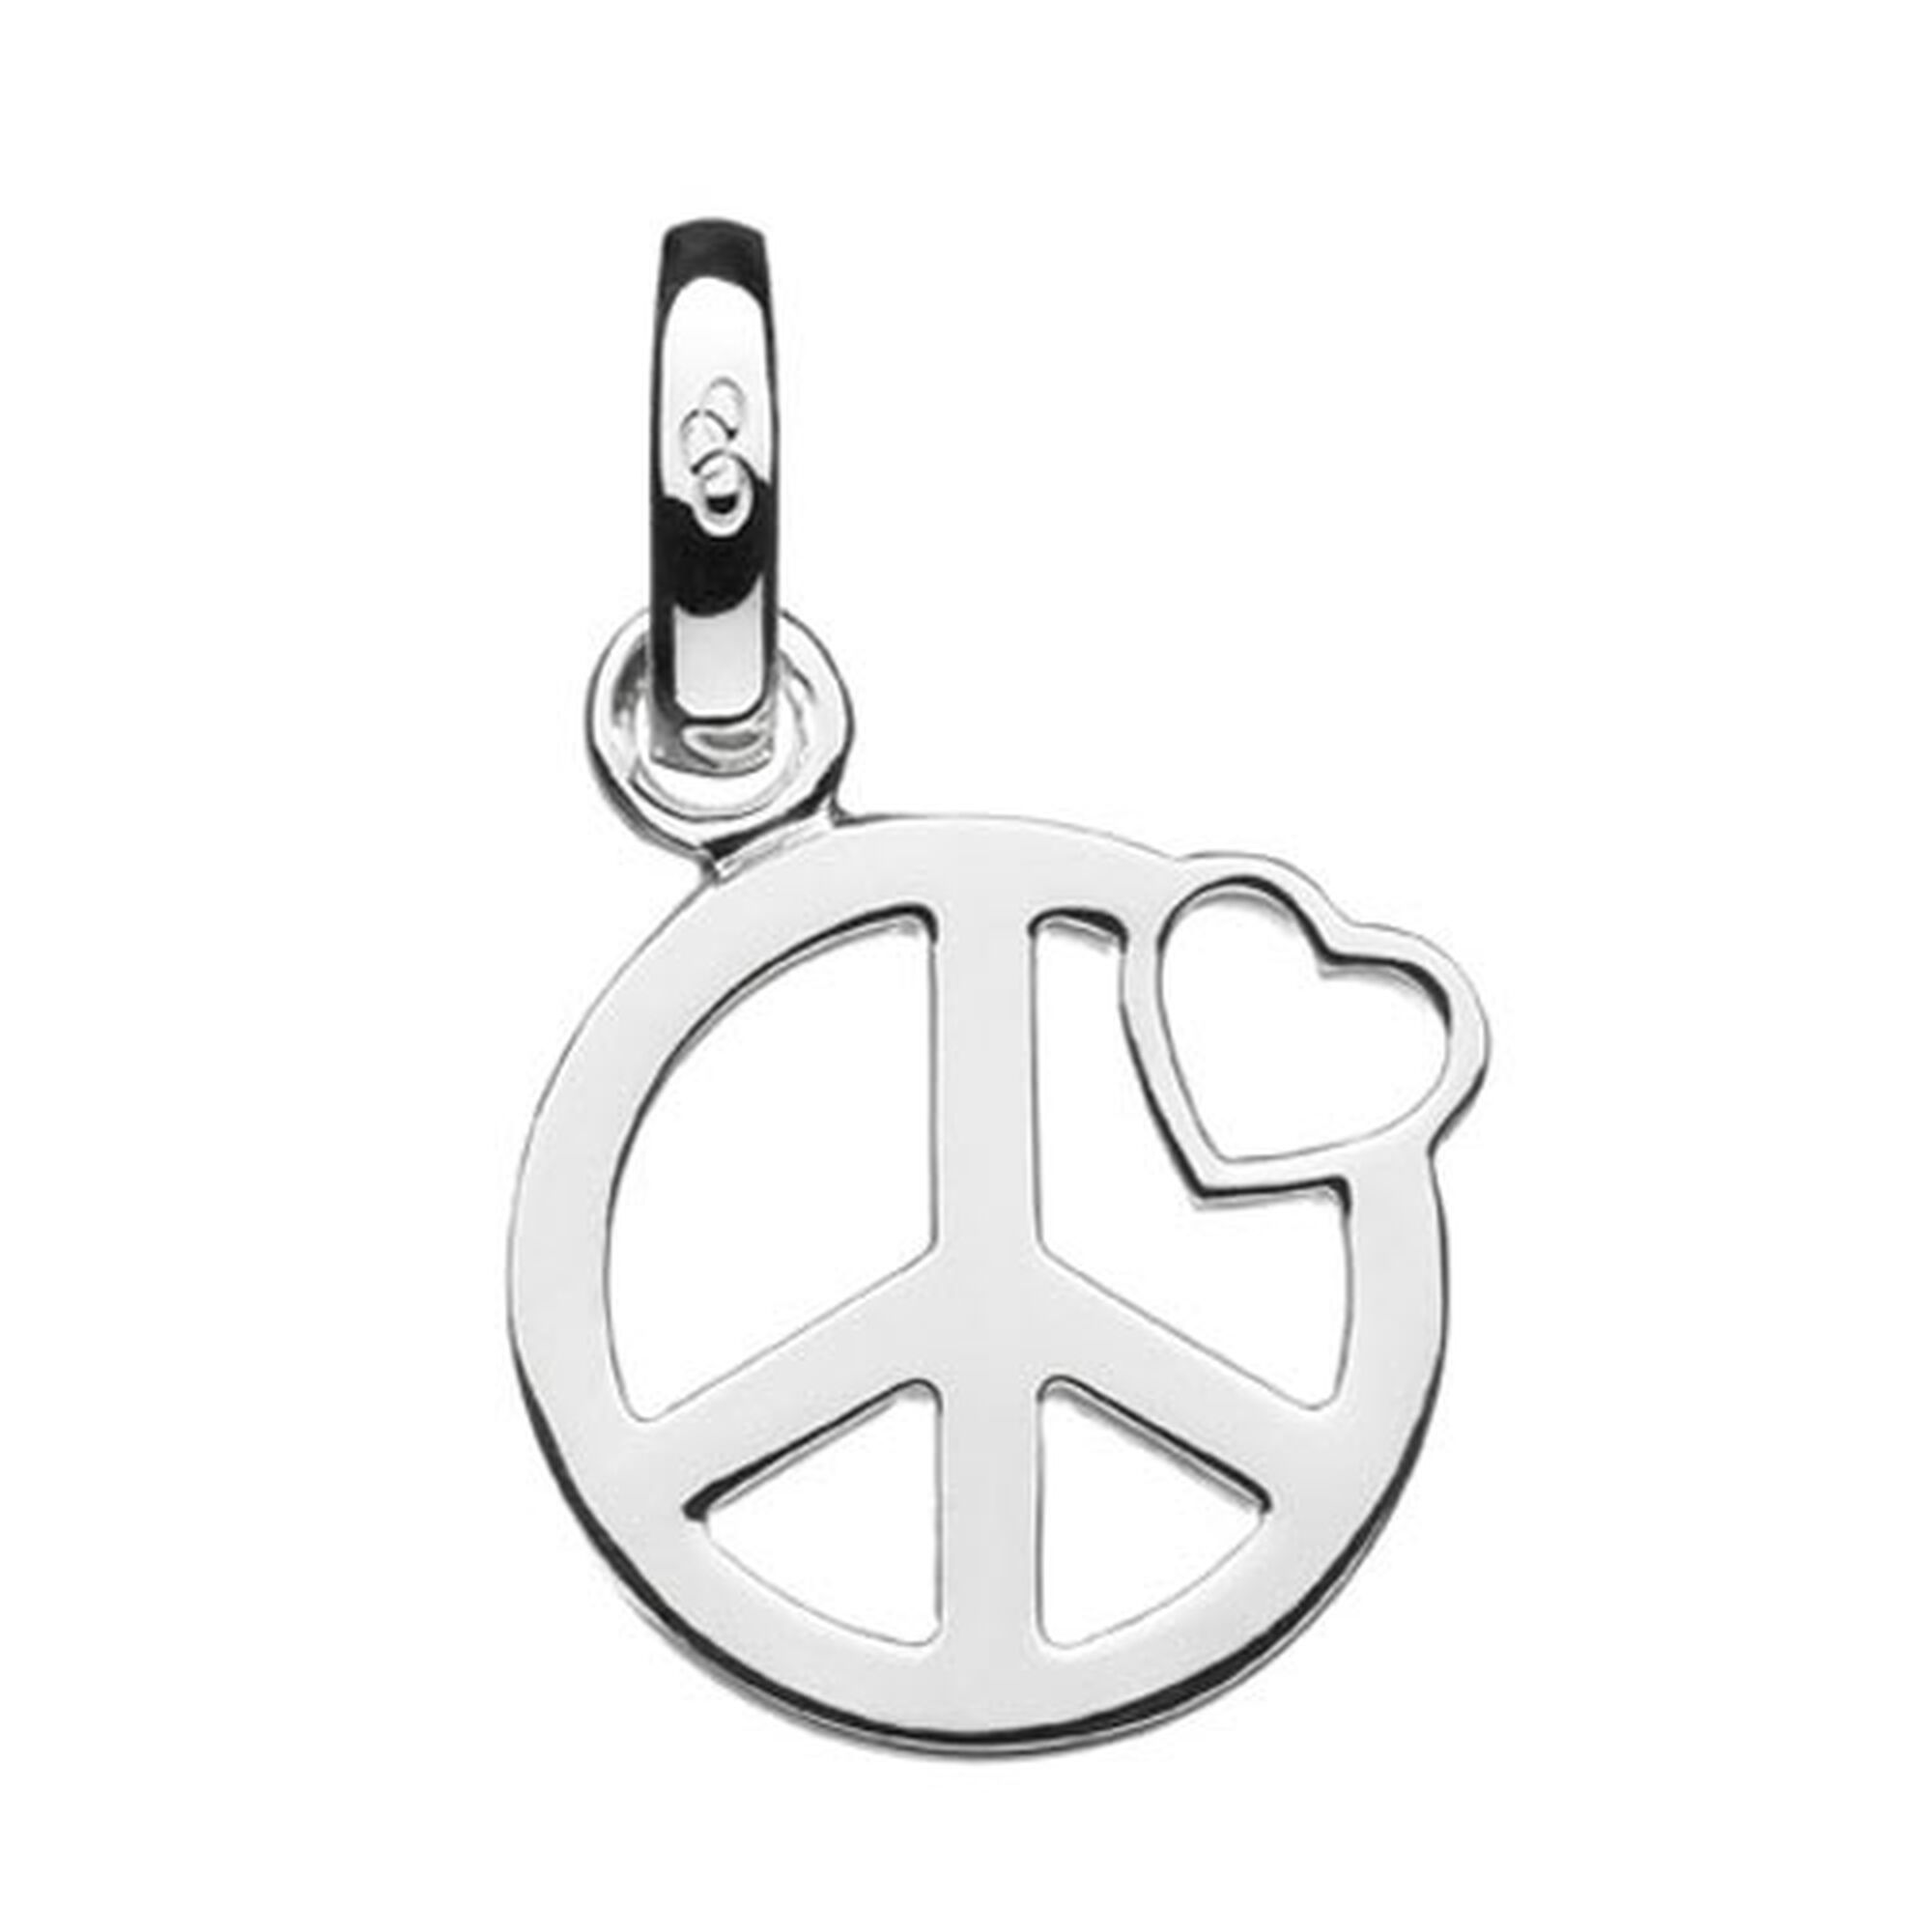 beardsley pendant store by products storenvy original online powered img peace tamera